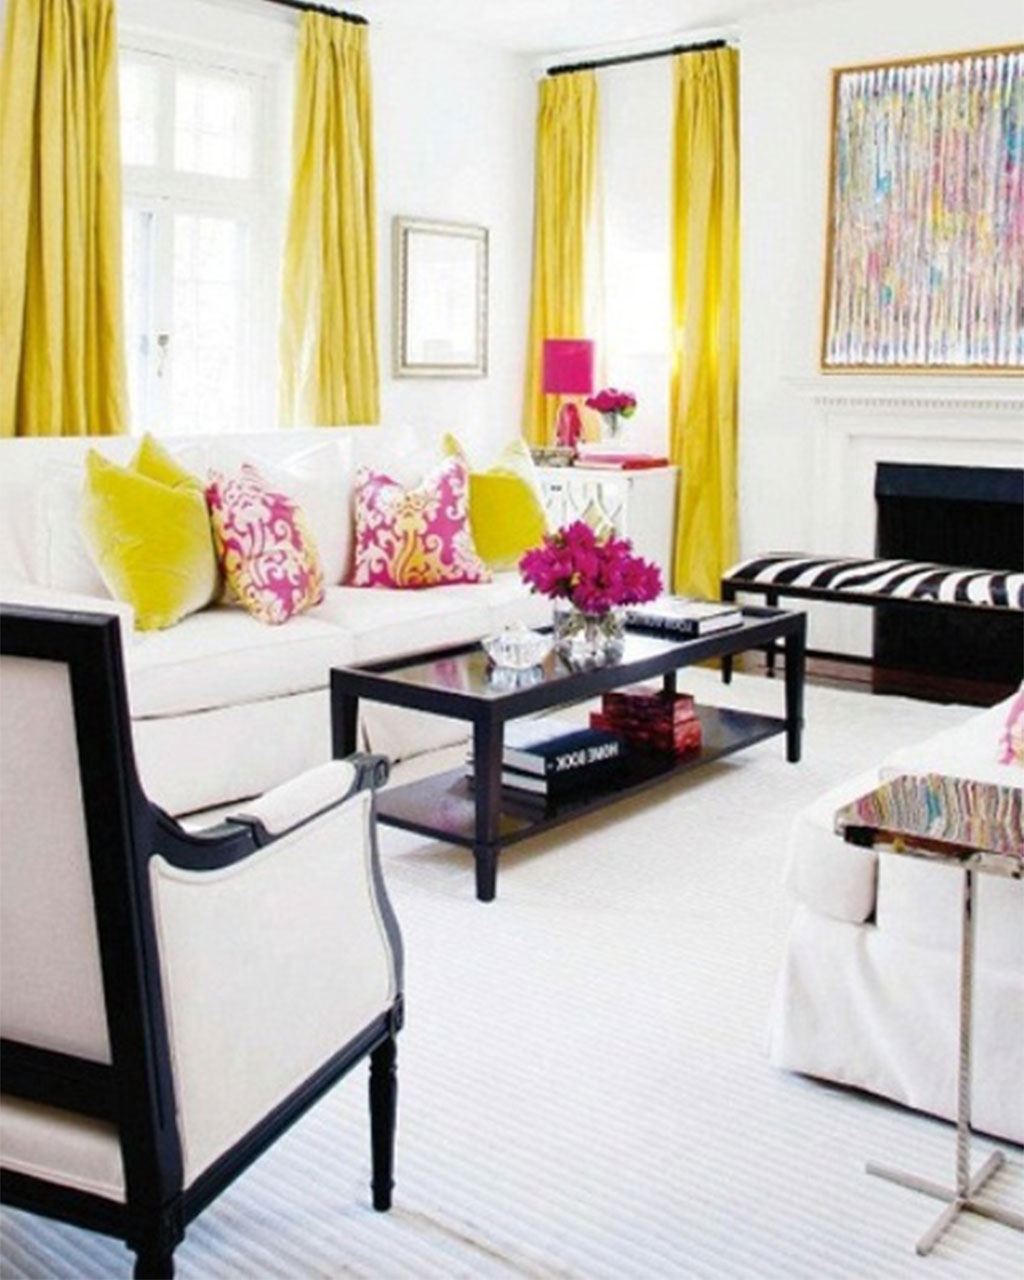 Decorating Idea Living Room: 36 Living Room Decorating Ideas That Smells Like Spring